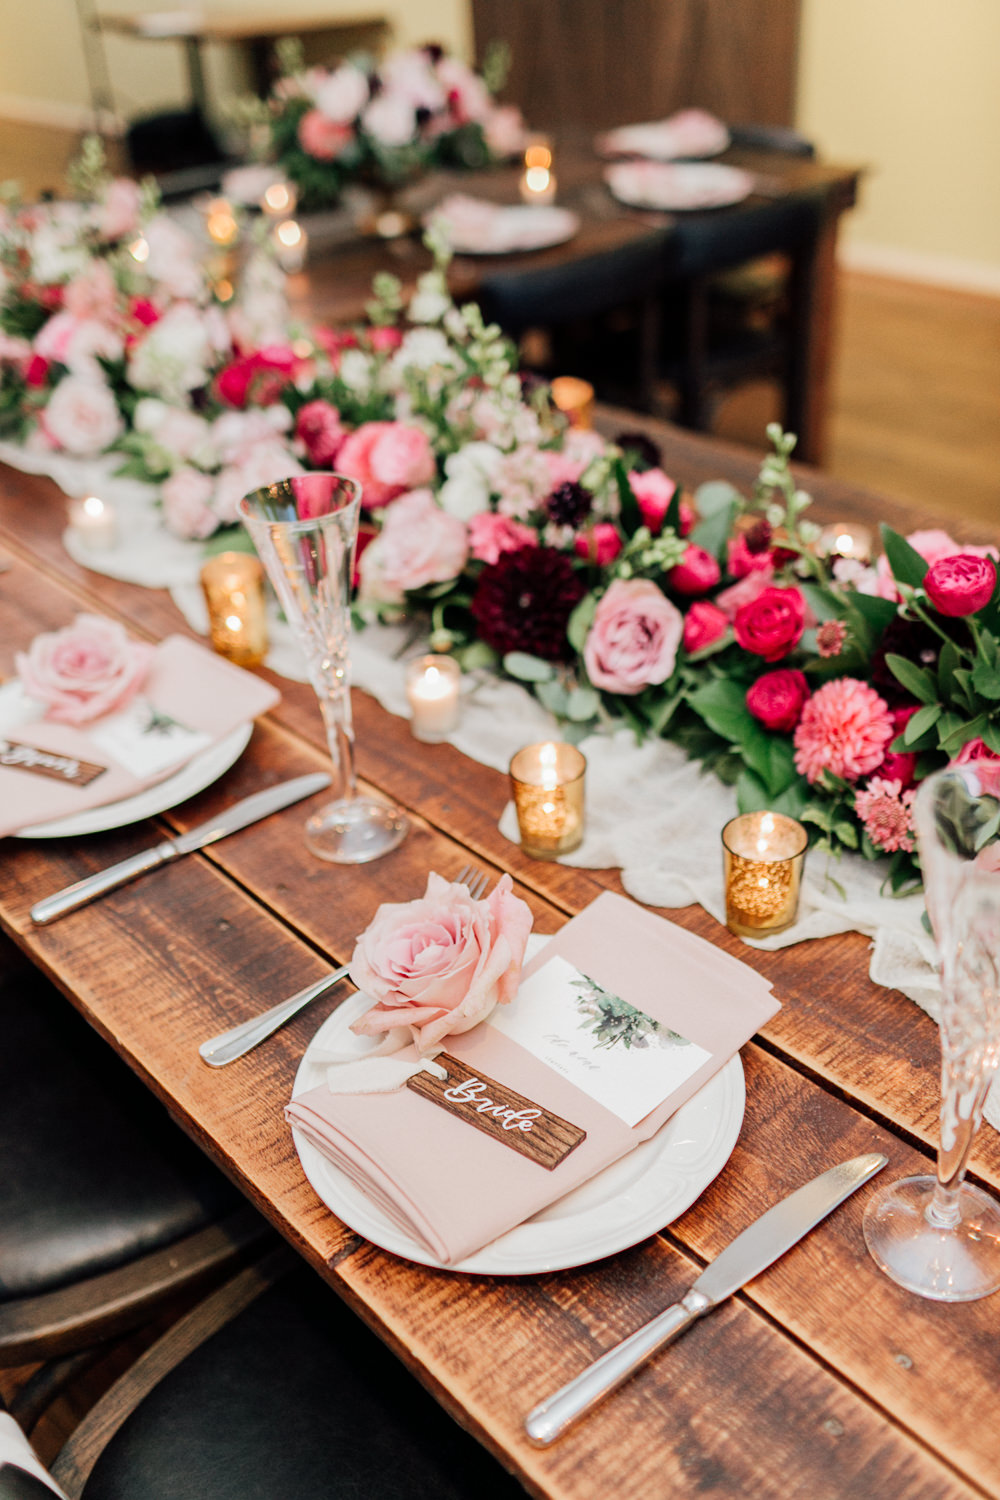 Table Tablescape Decor Flowers Swag Runner Garland Red Pink Rose Dahlia Centrepiece Candles Romantic Soft Elopement Wedding Las Vegas Kristen Joy Photography